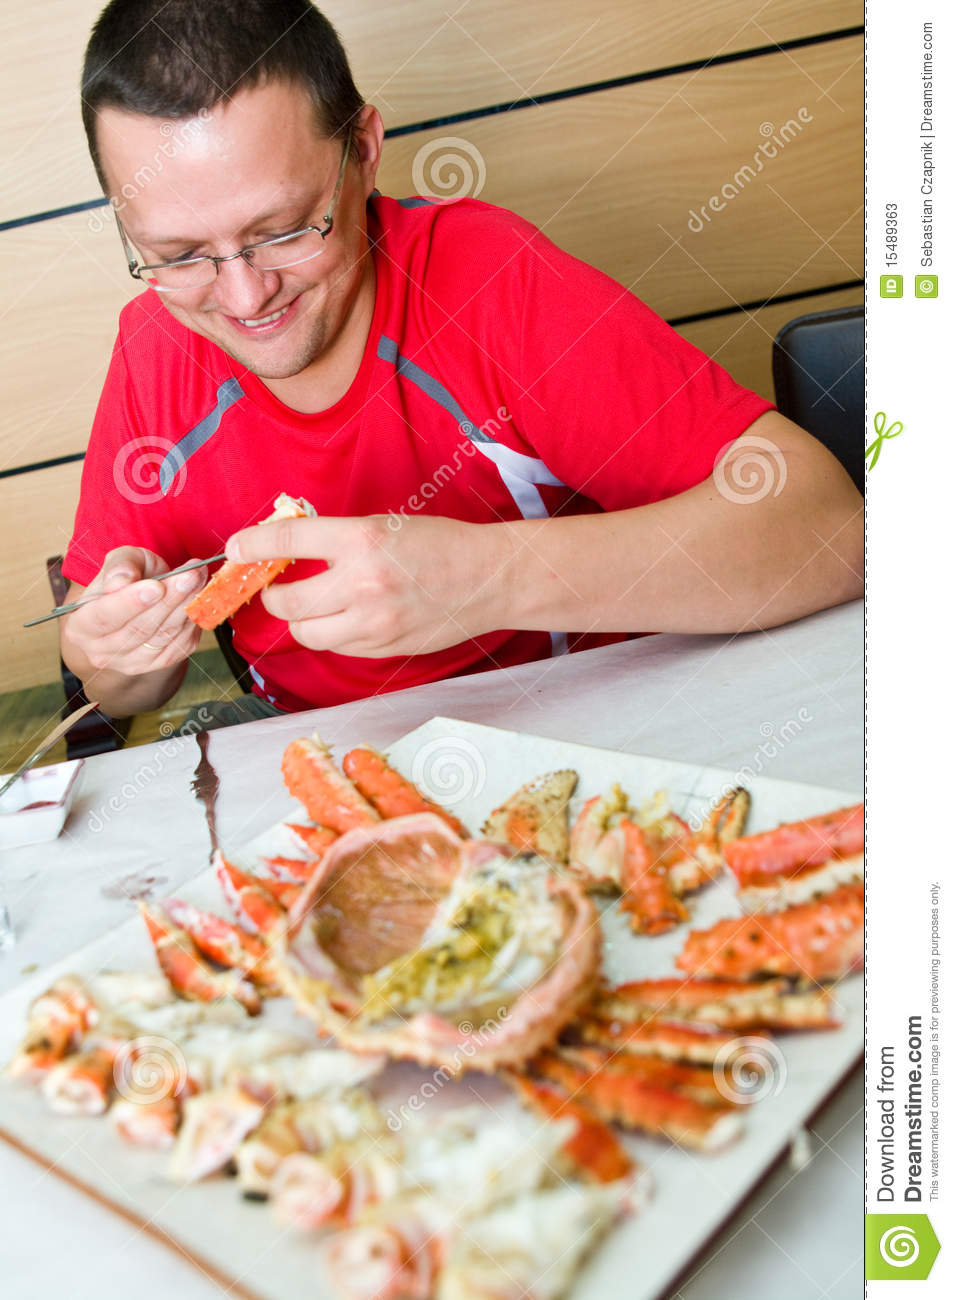 Man eating King crab s...